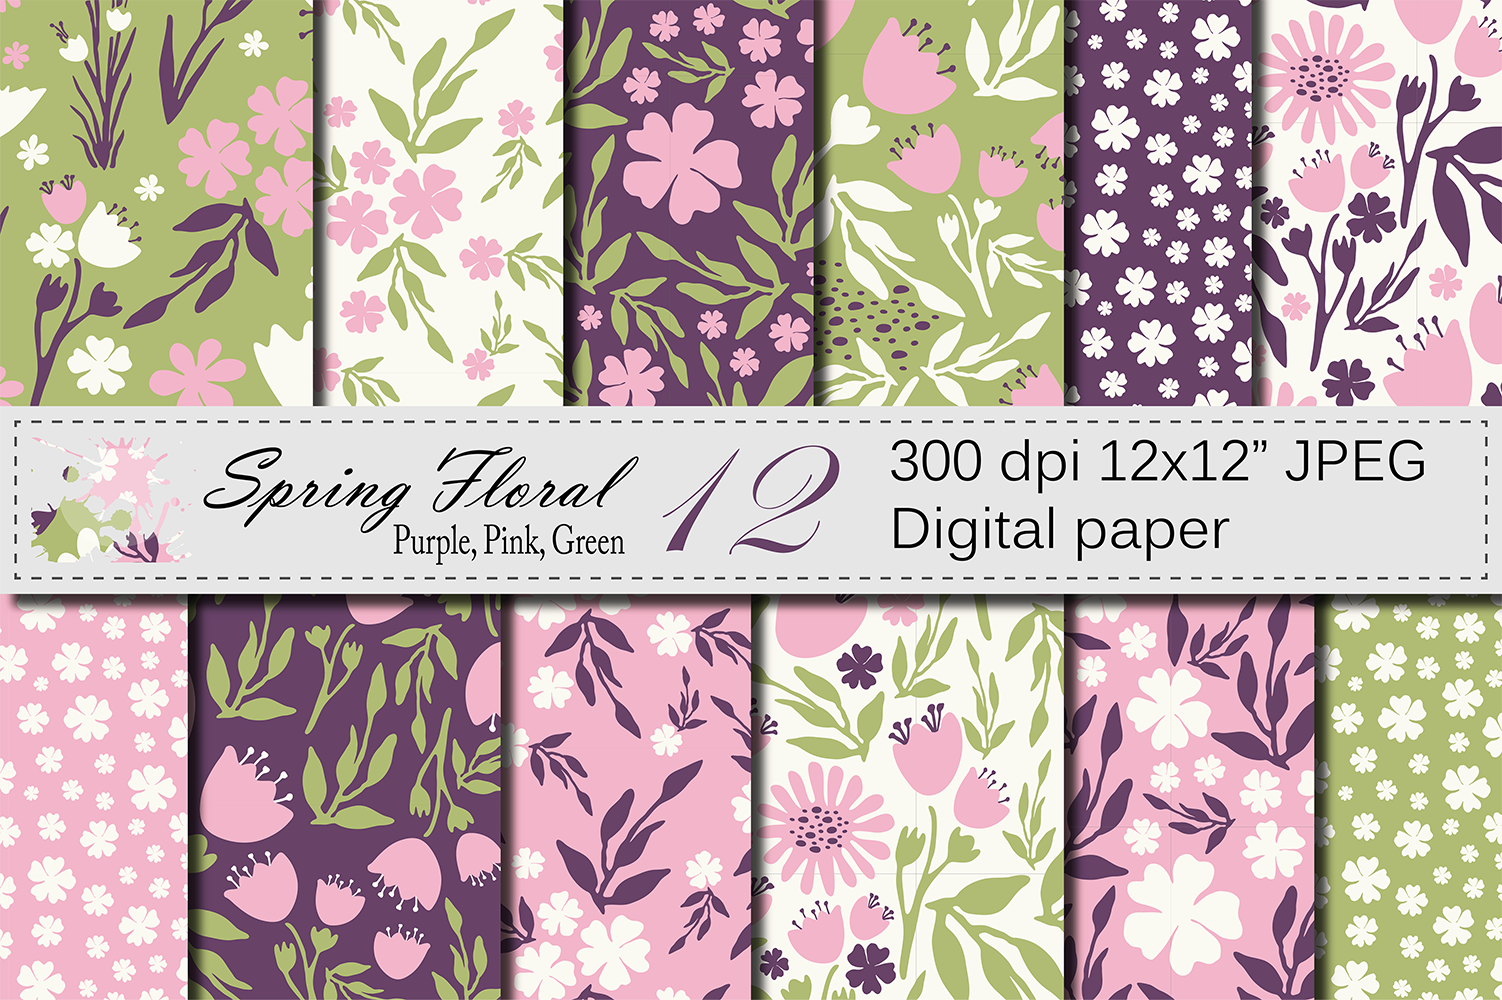 Seamless Floral Digital Paper, Hand Drawn Flowers - Pink Purple Green example image 1